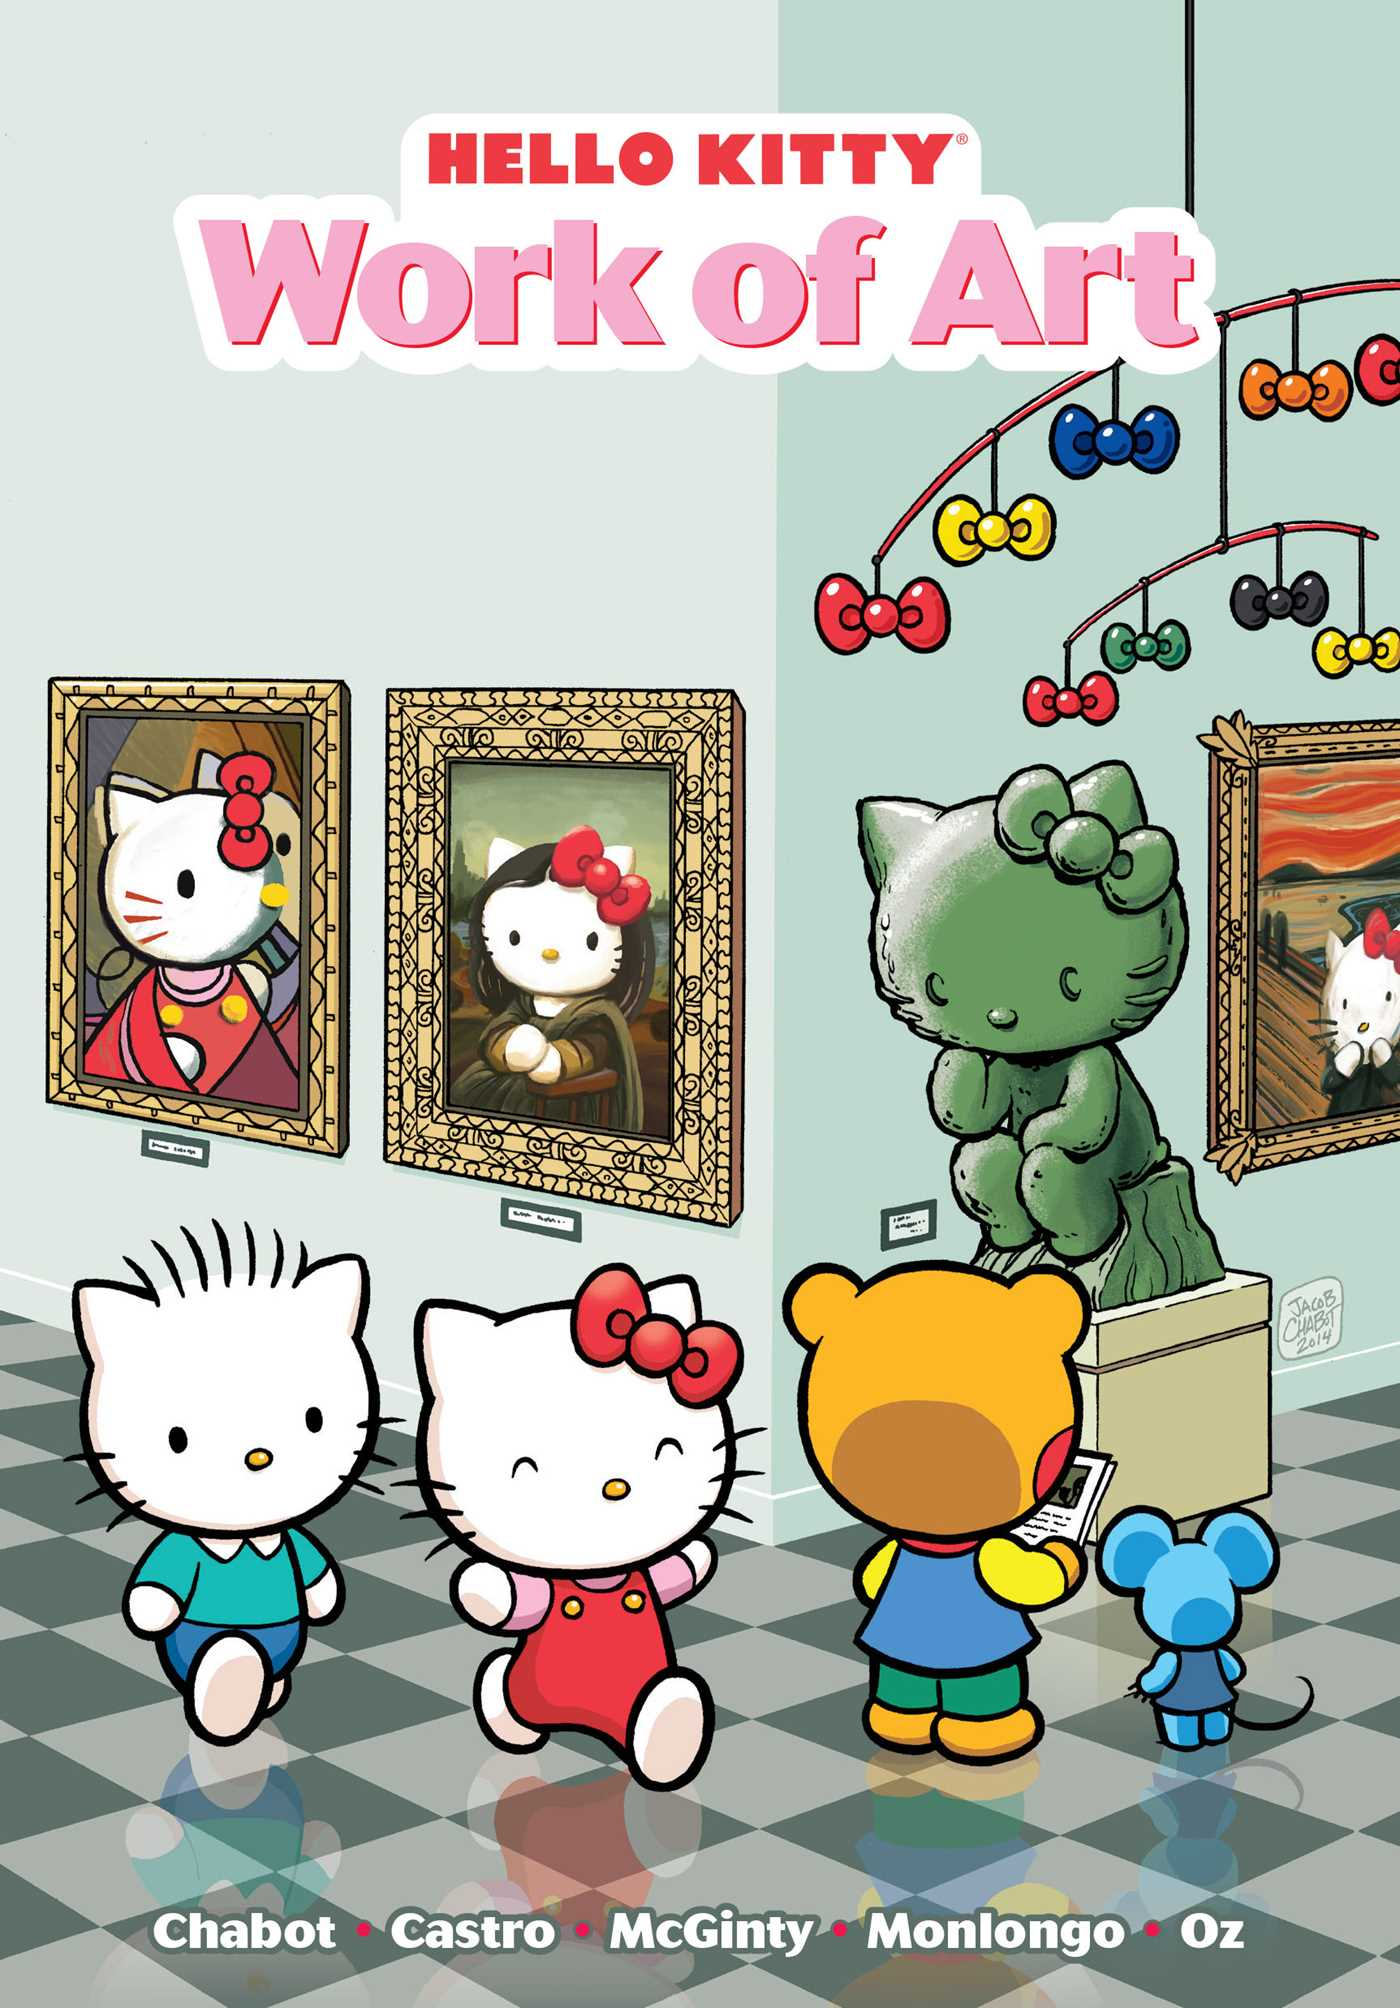 Hello-kitty-work-of-art-9781421575421_hr